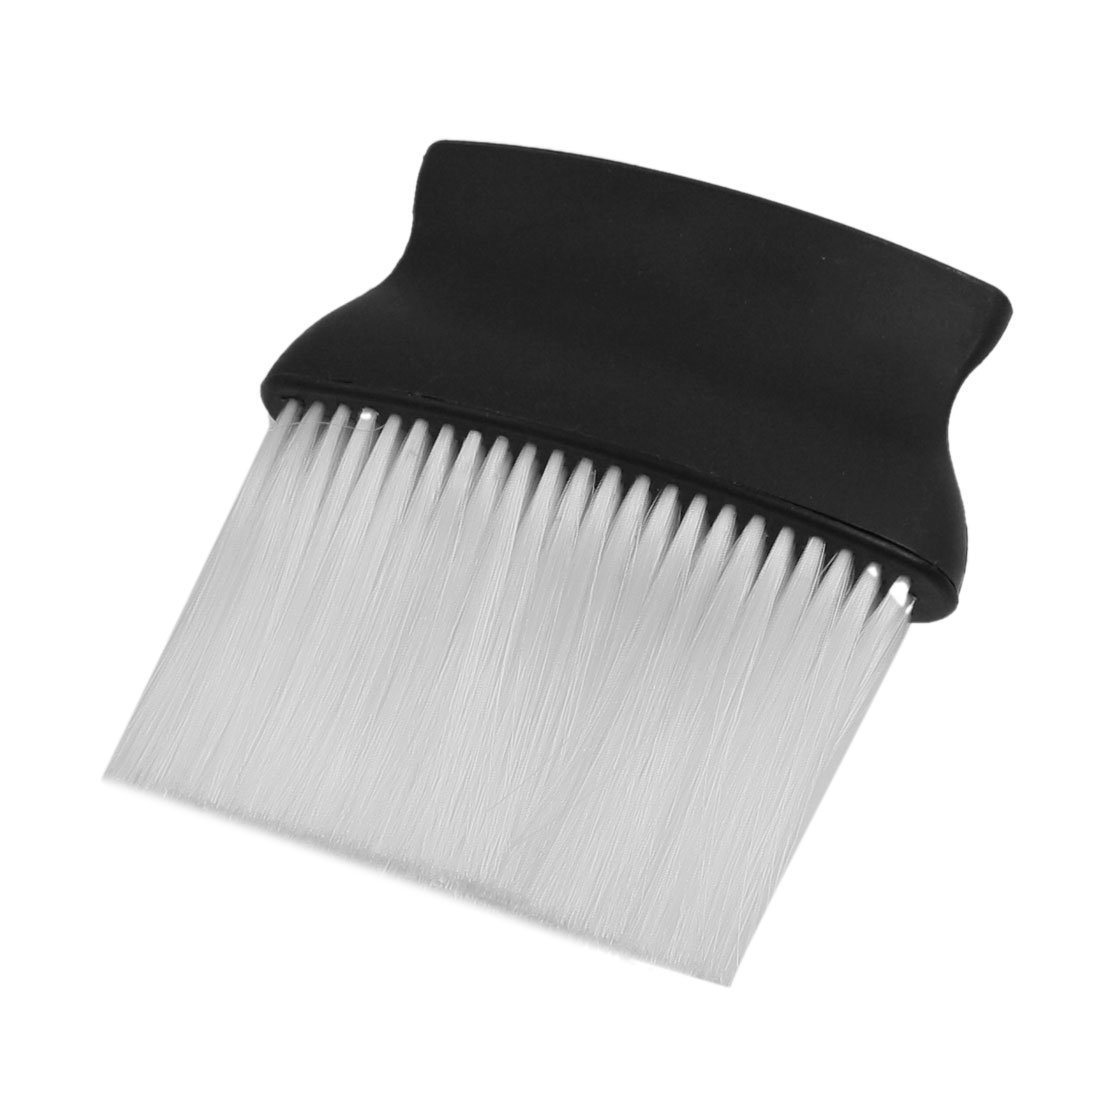 SODIAL(R) Black White Plastic Hair Salon Neck Duster Cleaning Brush for Barber